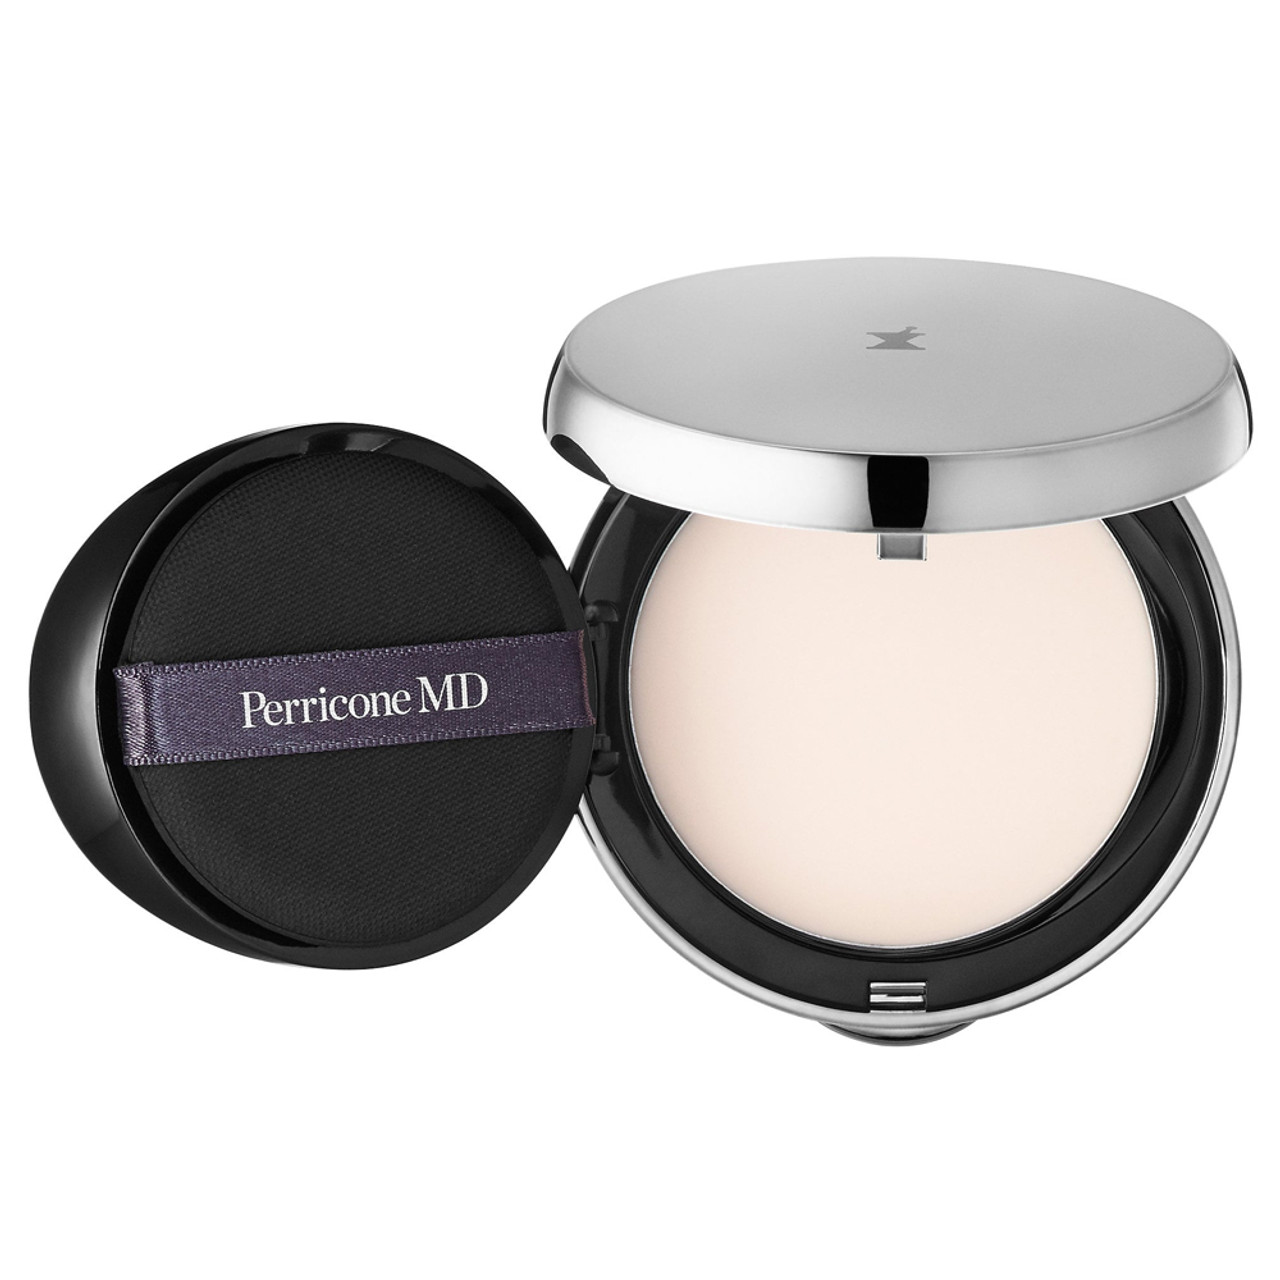 Perricone MD Instant Blur Compact